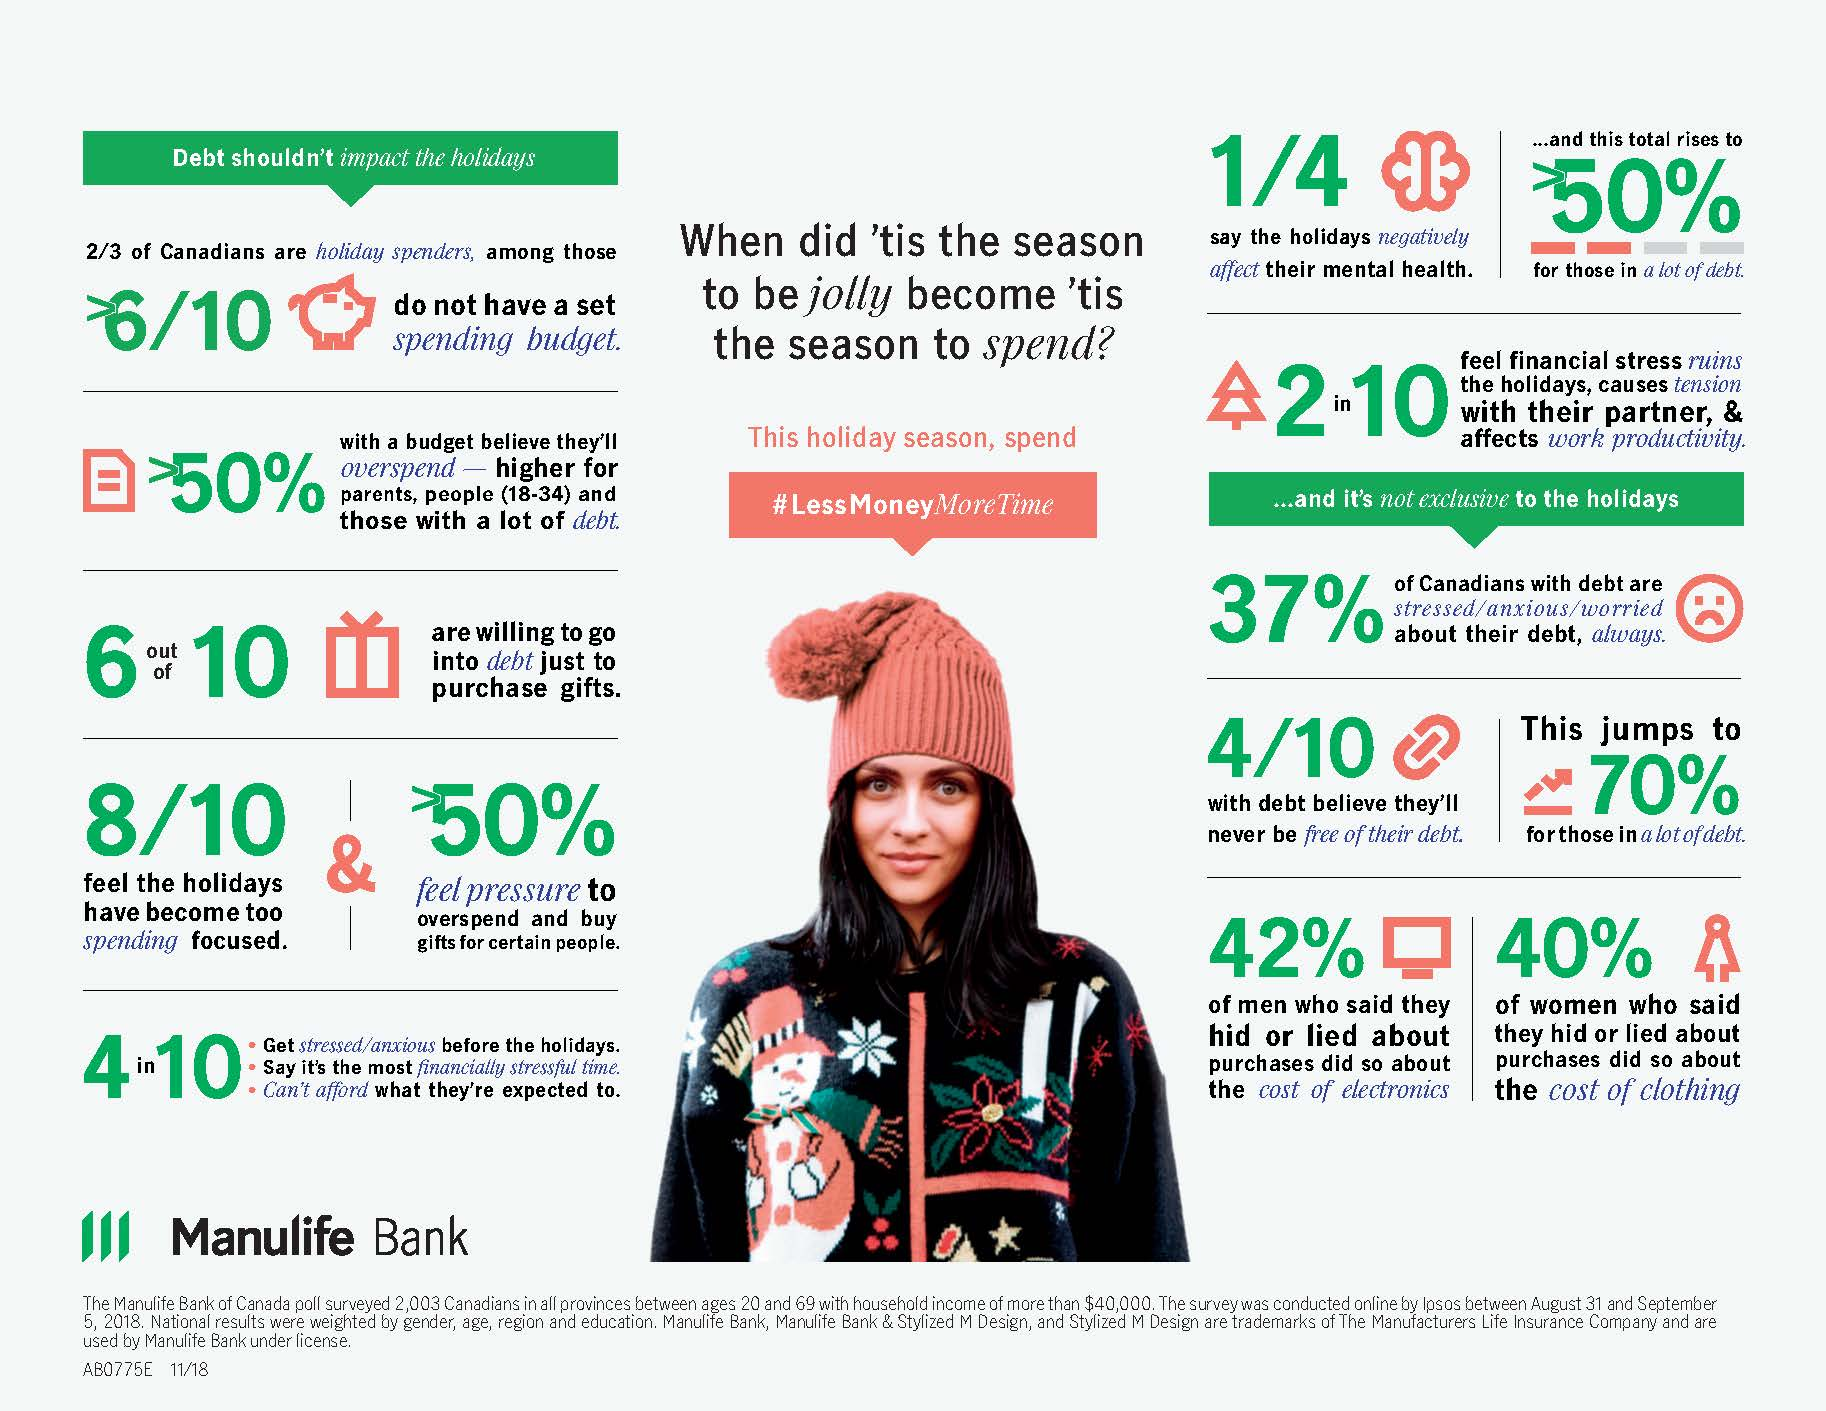 debt survey icono graphic -manulife bank